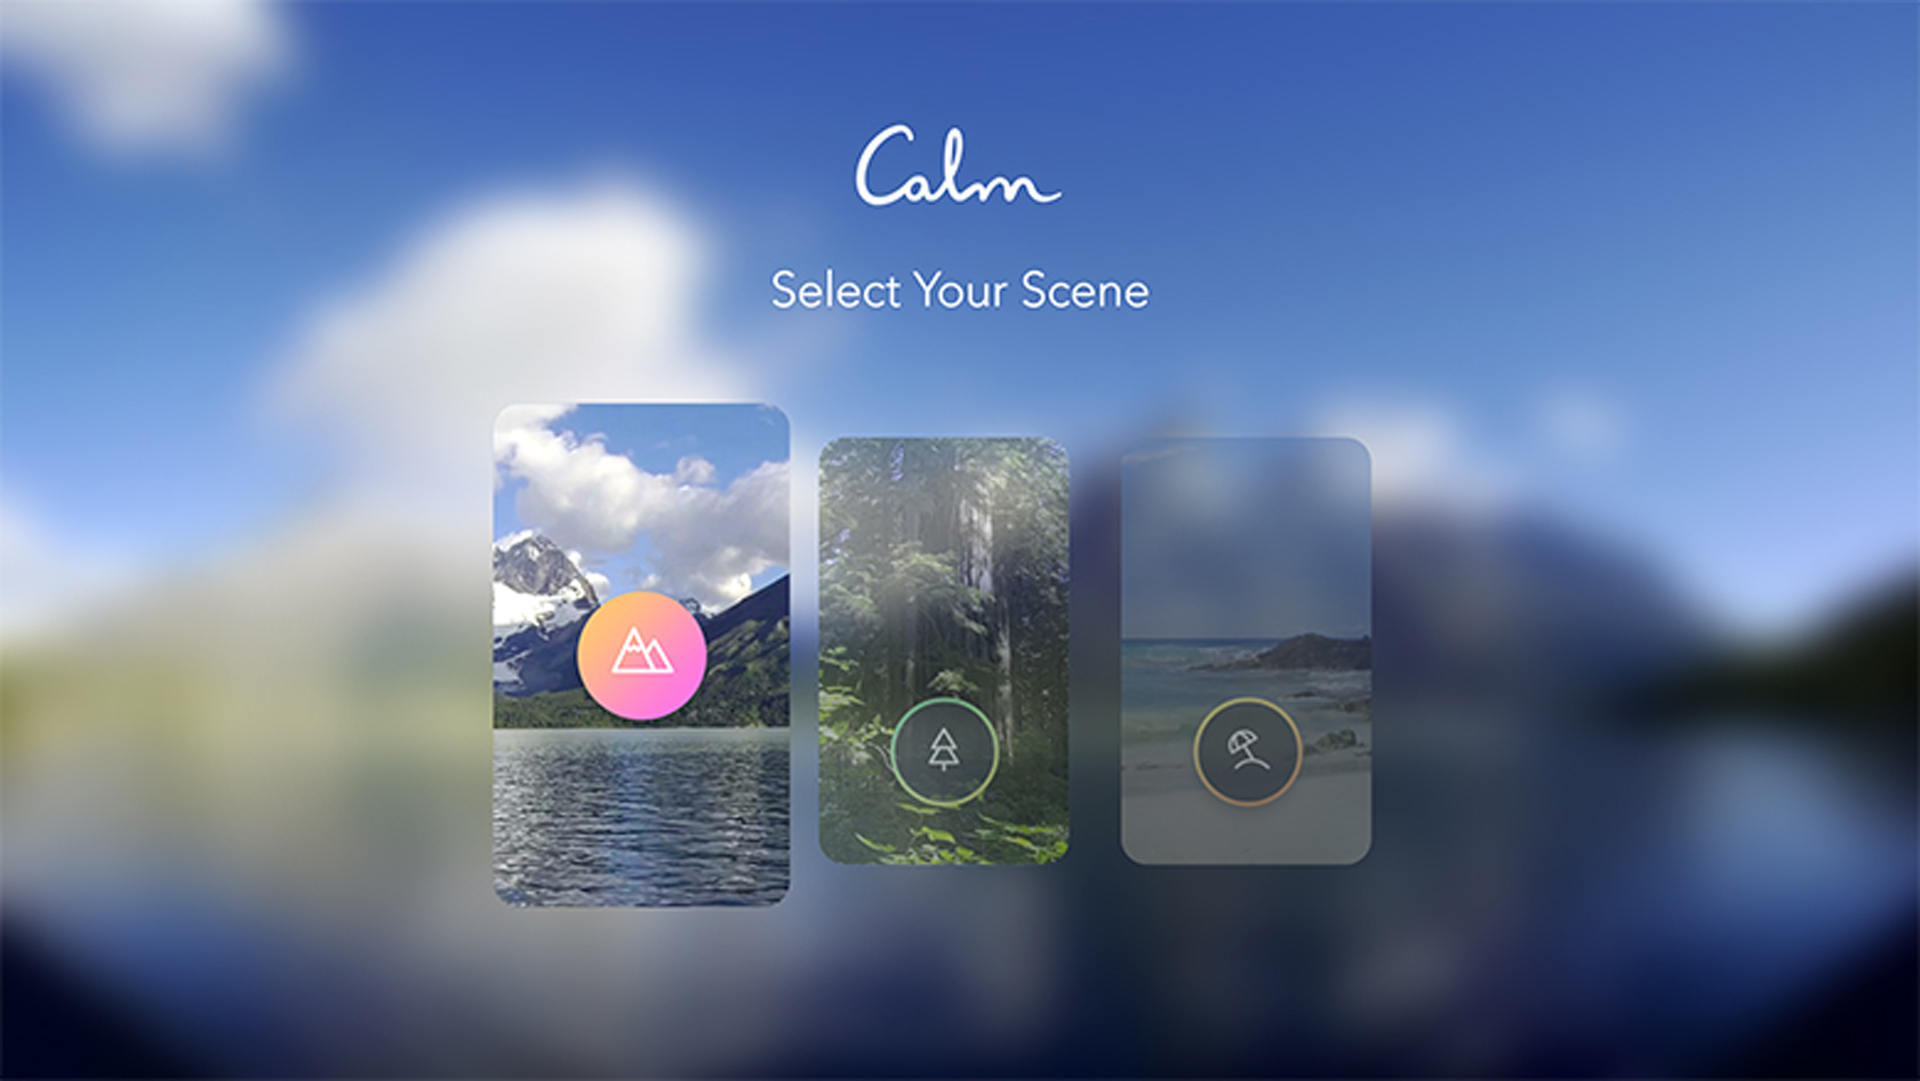 Award-winning Mobile Meditation App 'Calm' Comes to Oculus